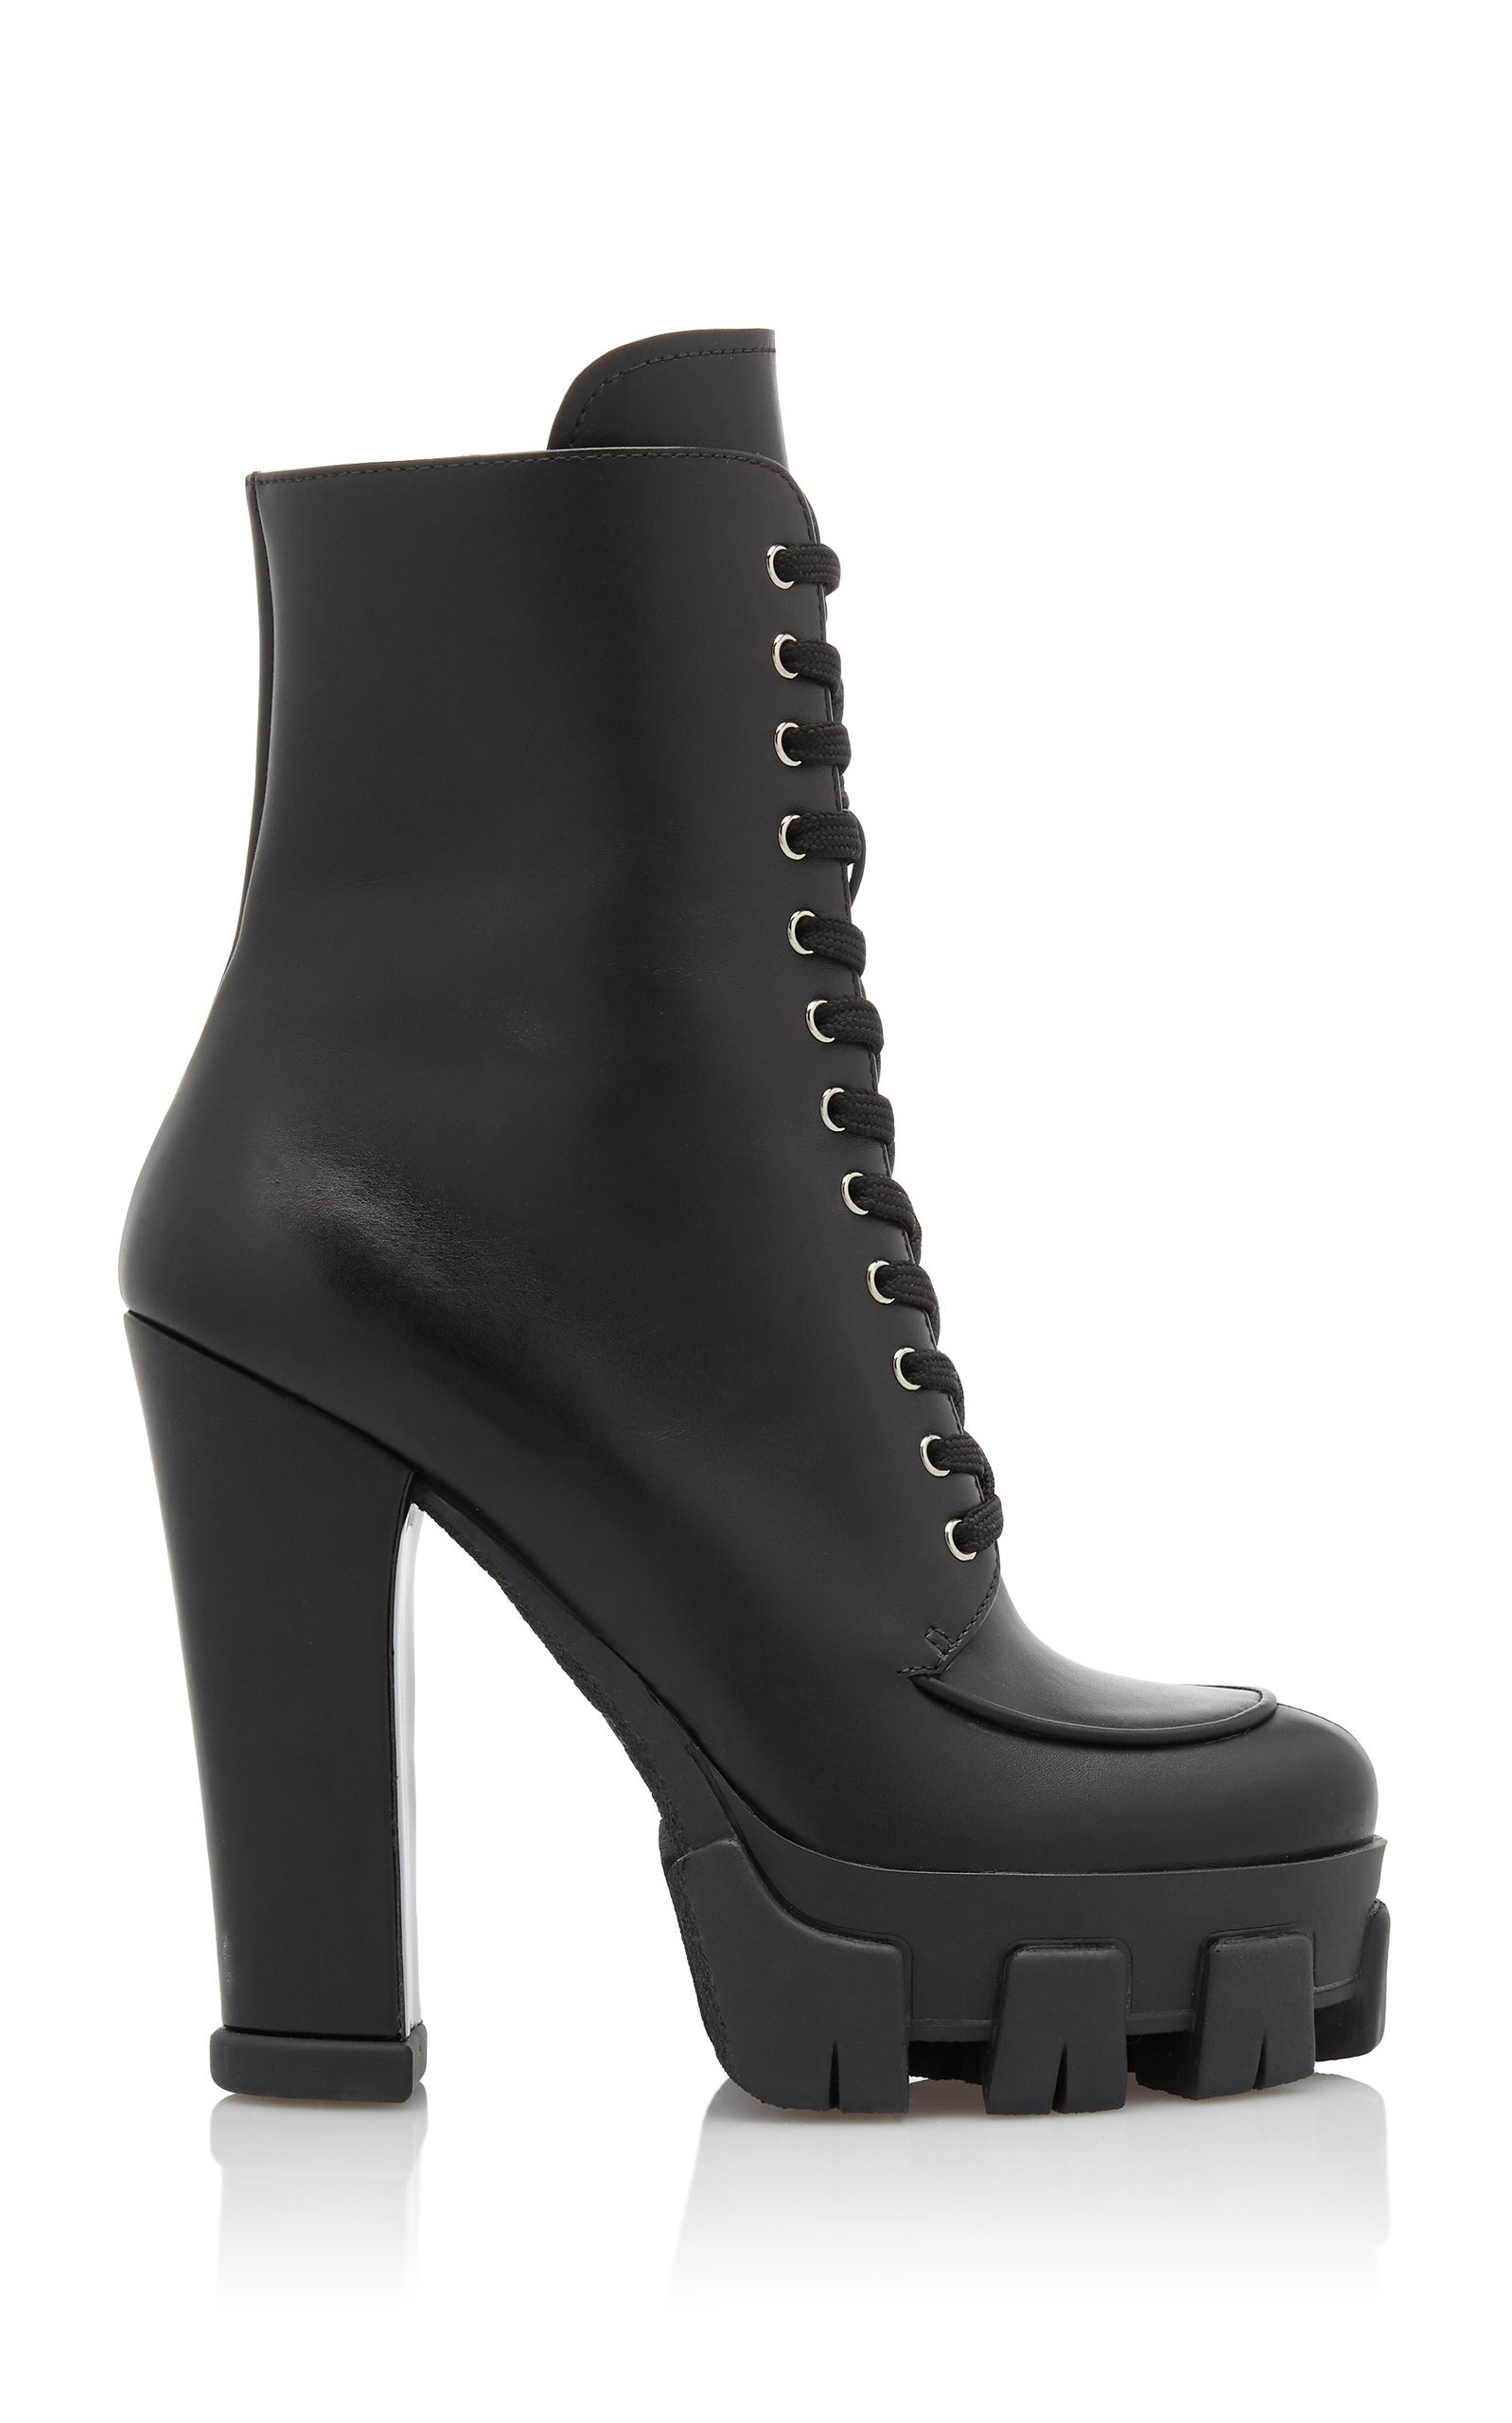 Lace-Up Leather Platform Boots By Prada